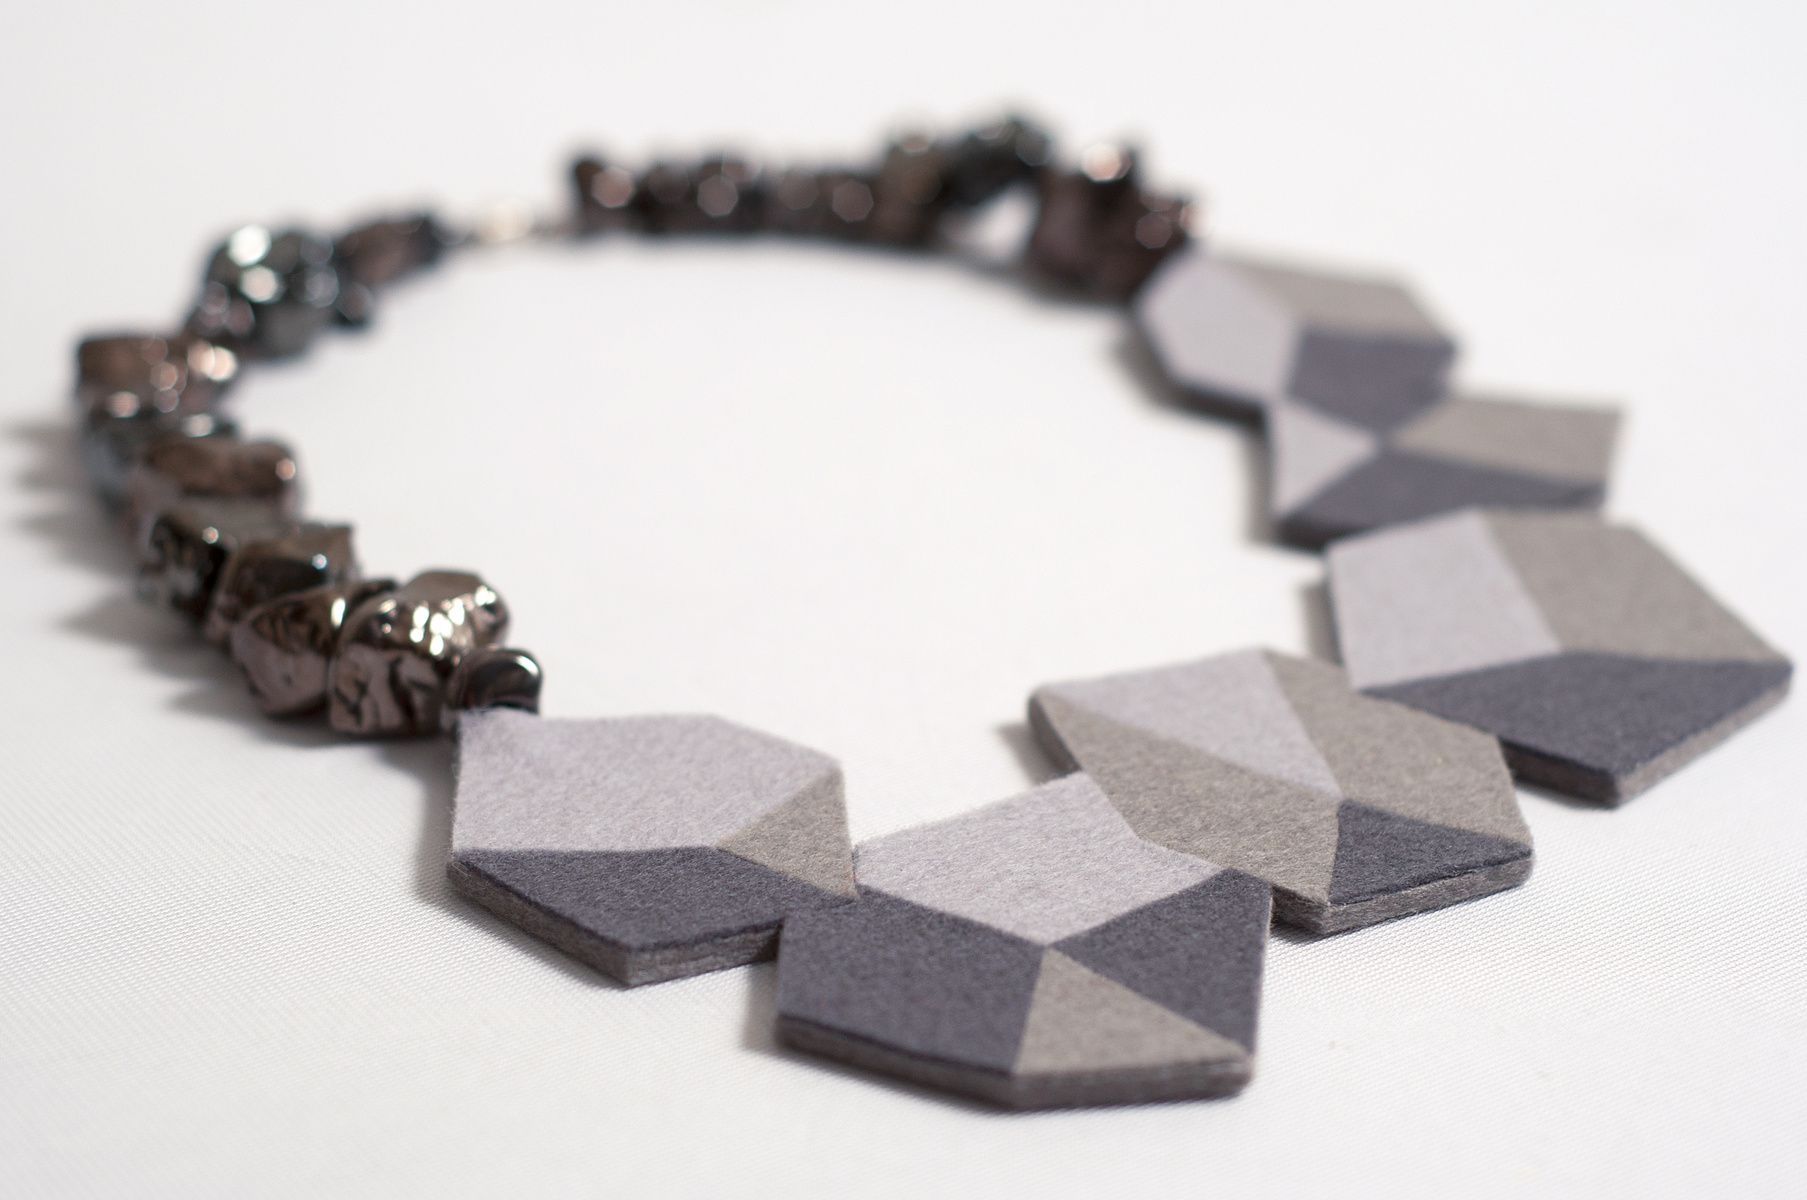 is felt™ designer jewelry - collection